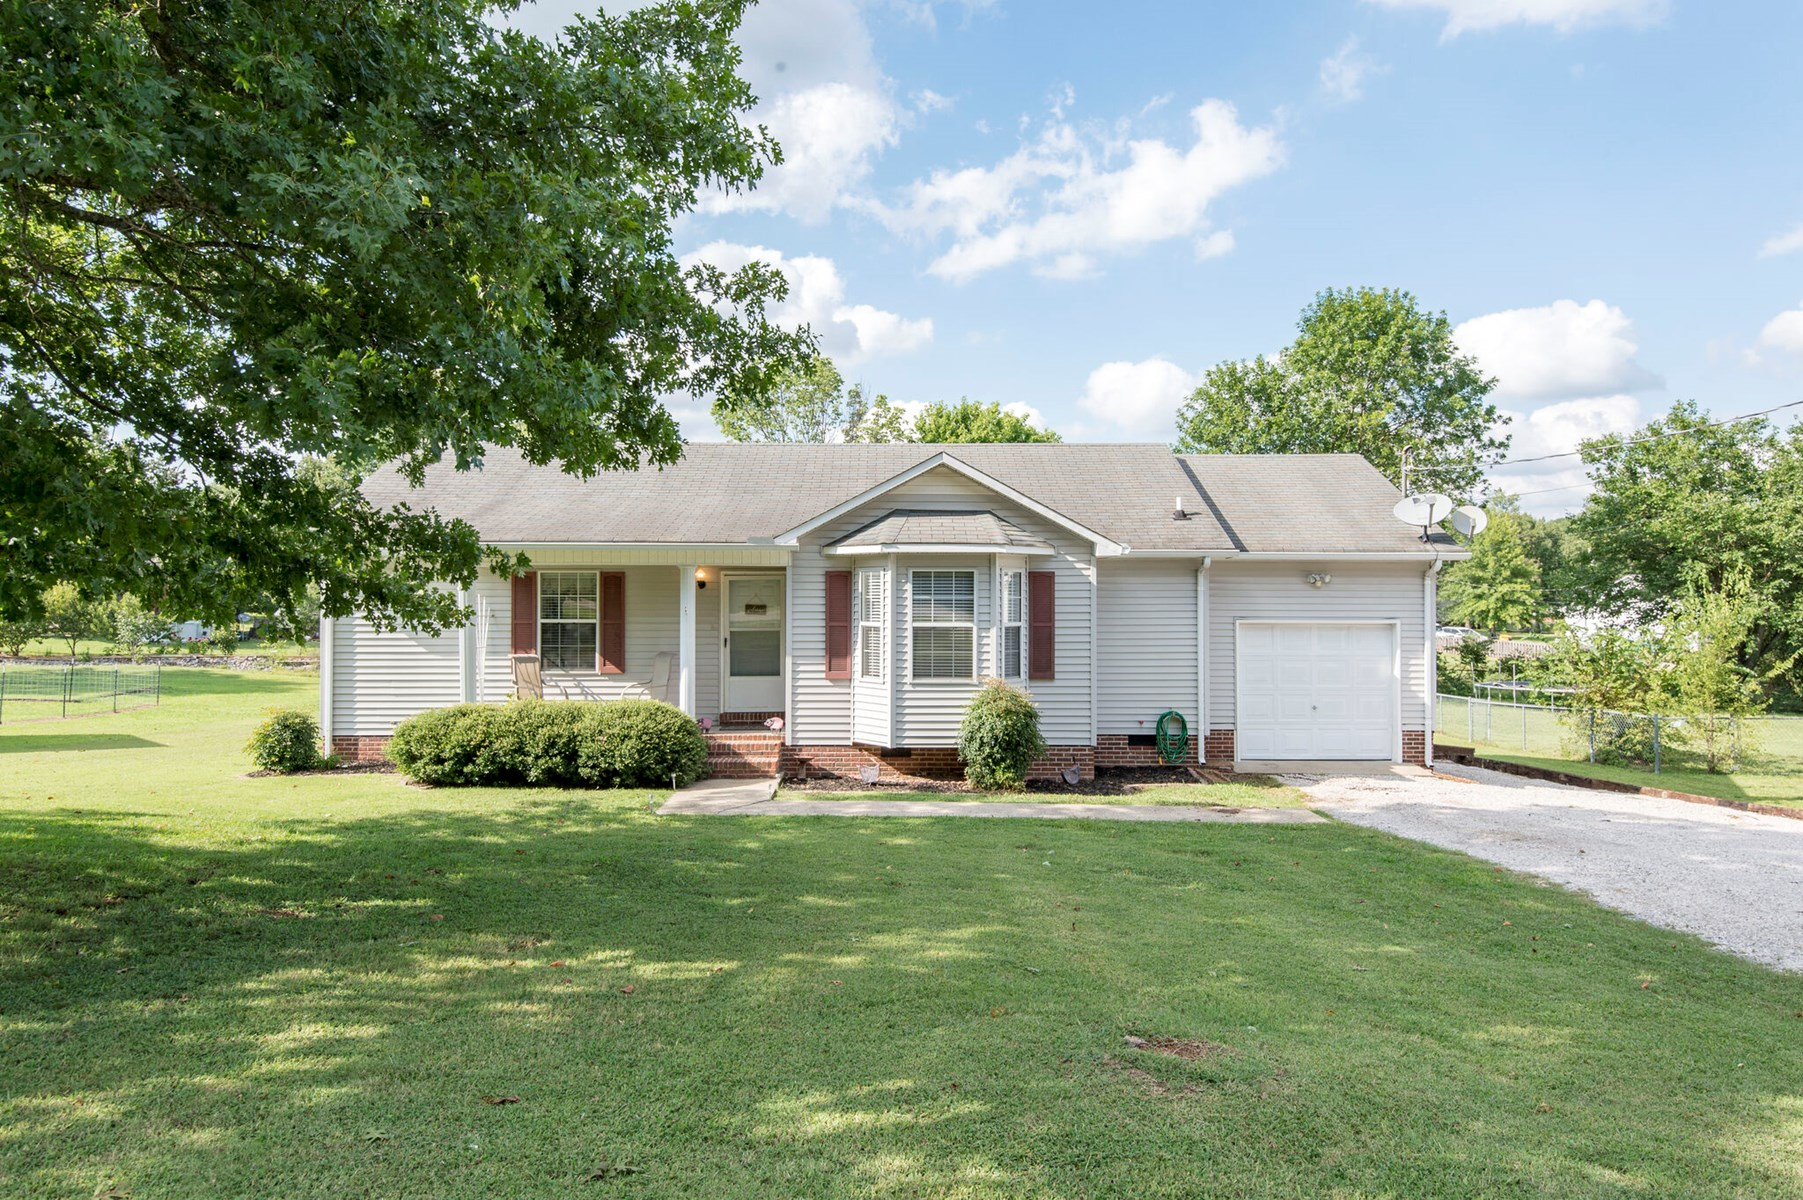 Ranch Style Home in Town for Sale in Lewisburg, Tennessee